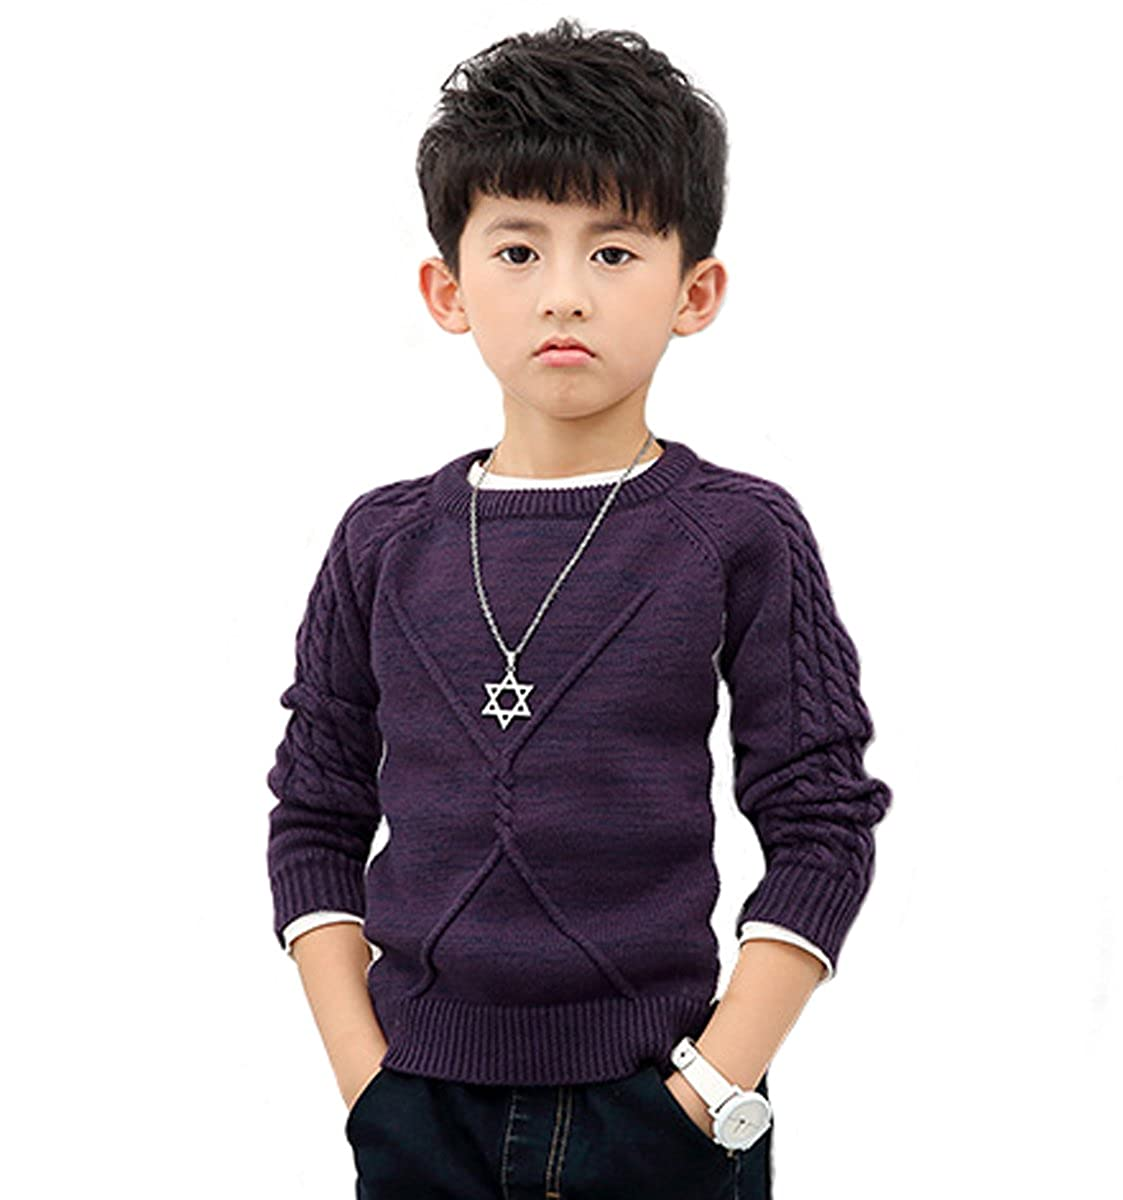 NABER Kids Boys' Long Sleeve Knitwear Crewneck Pullover Sweaters Size 4-13 Years